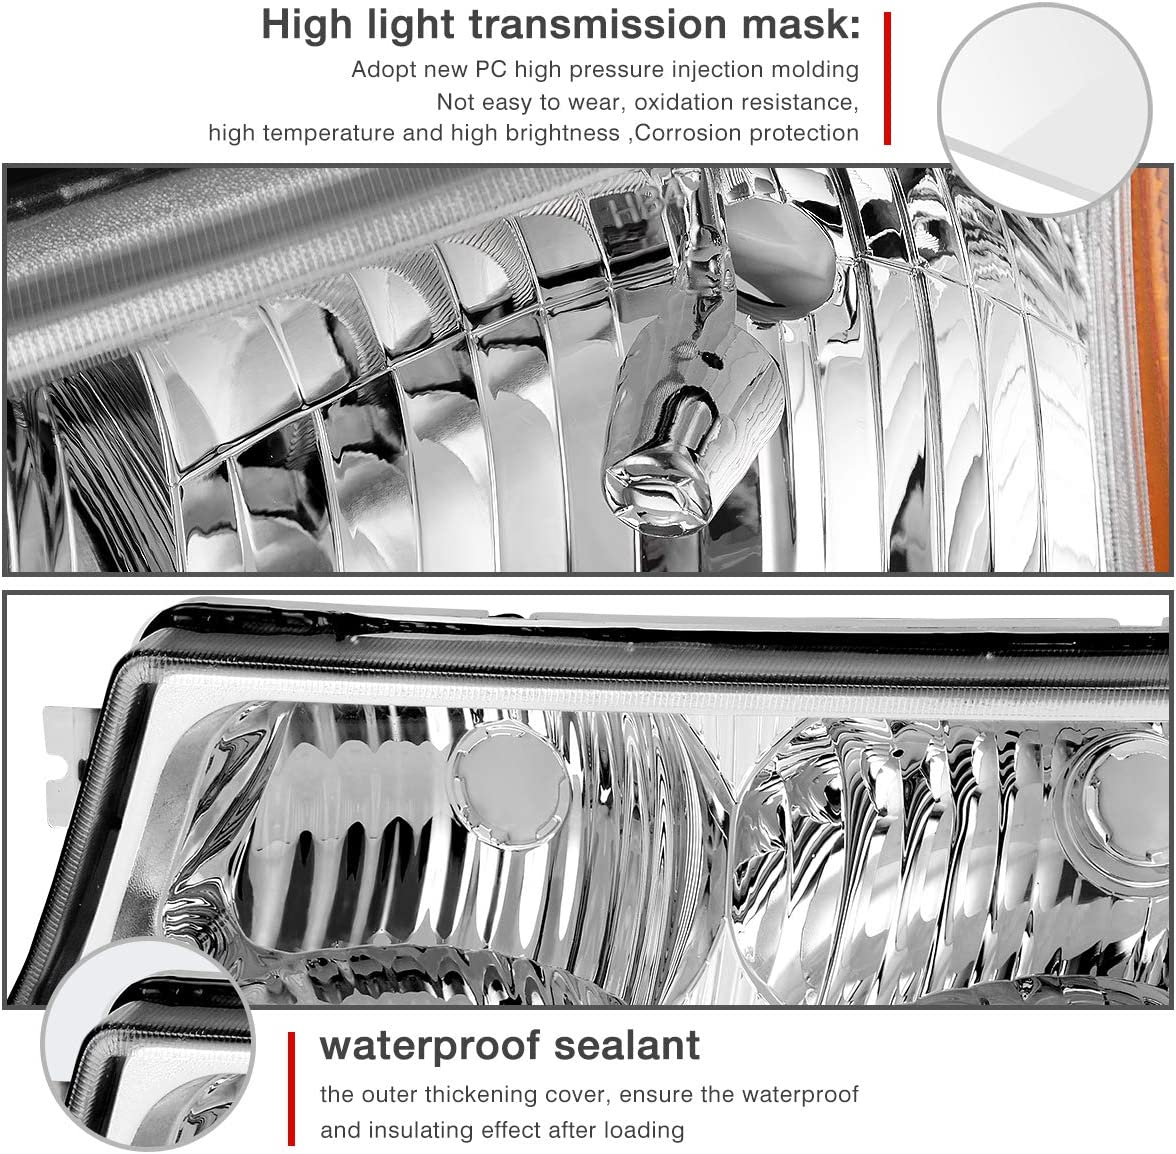 Headlight Assembly For 2003-2006 Chevy Avalanche// 2003-2007 Chevy Silverado 1500HD// 2003-2006 Chevy Silverado 2500HD Front Signal Light Included Not for Body Cladding Models